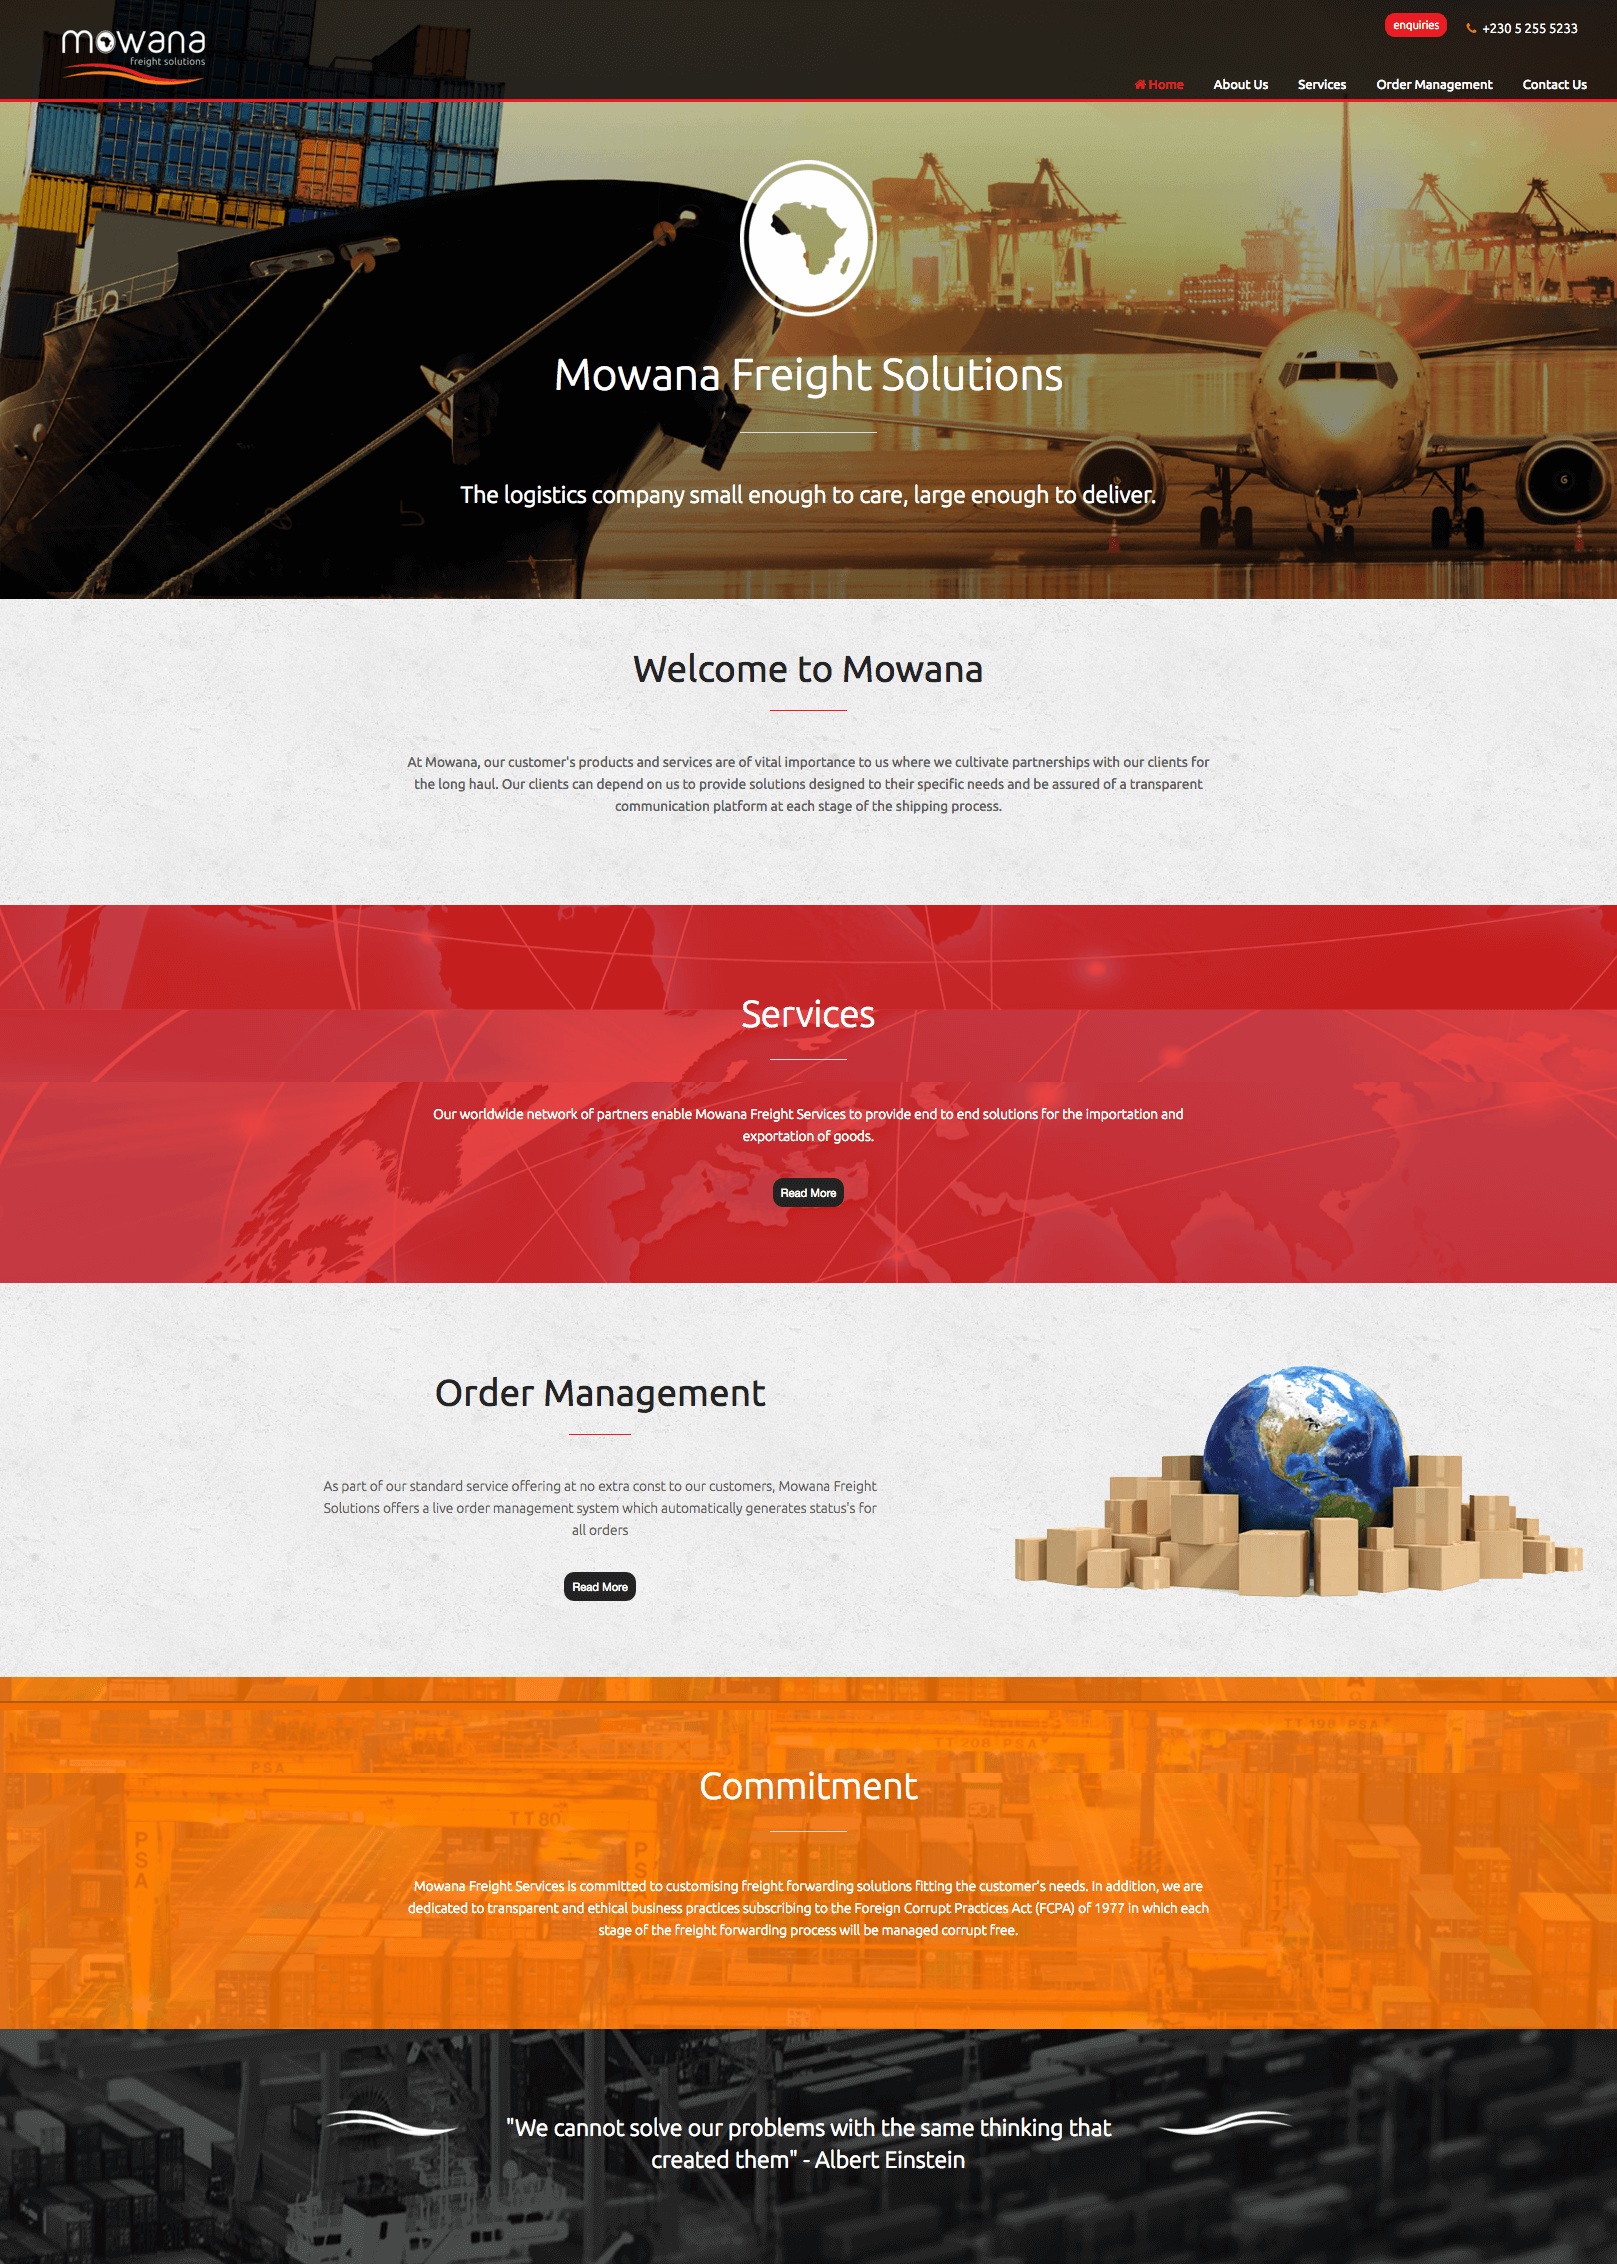 Mowana website by Billow